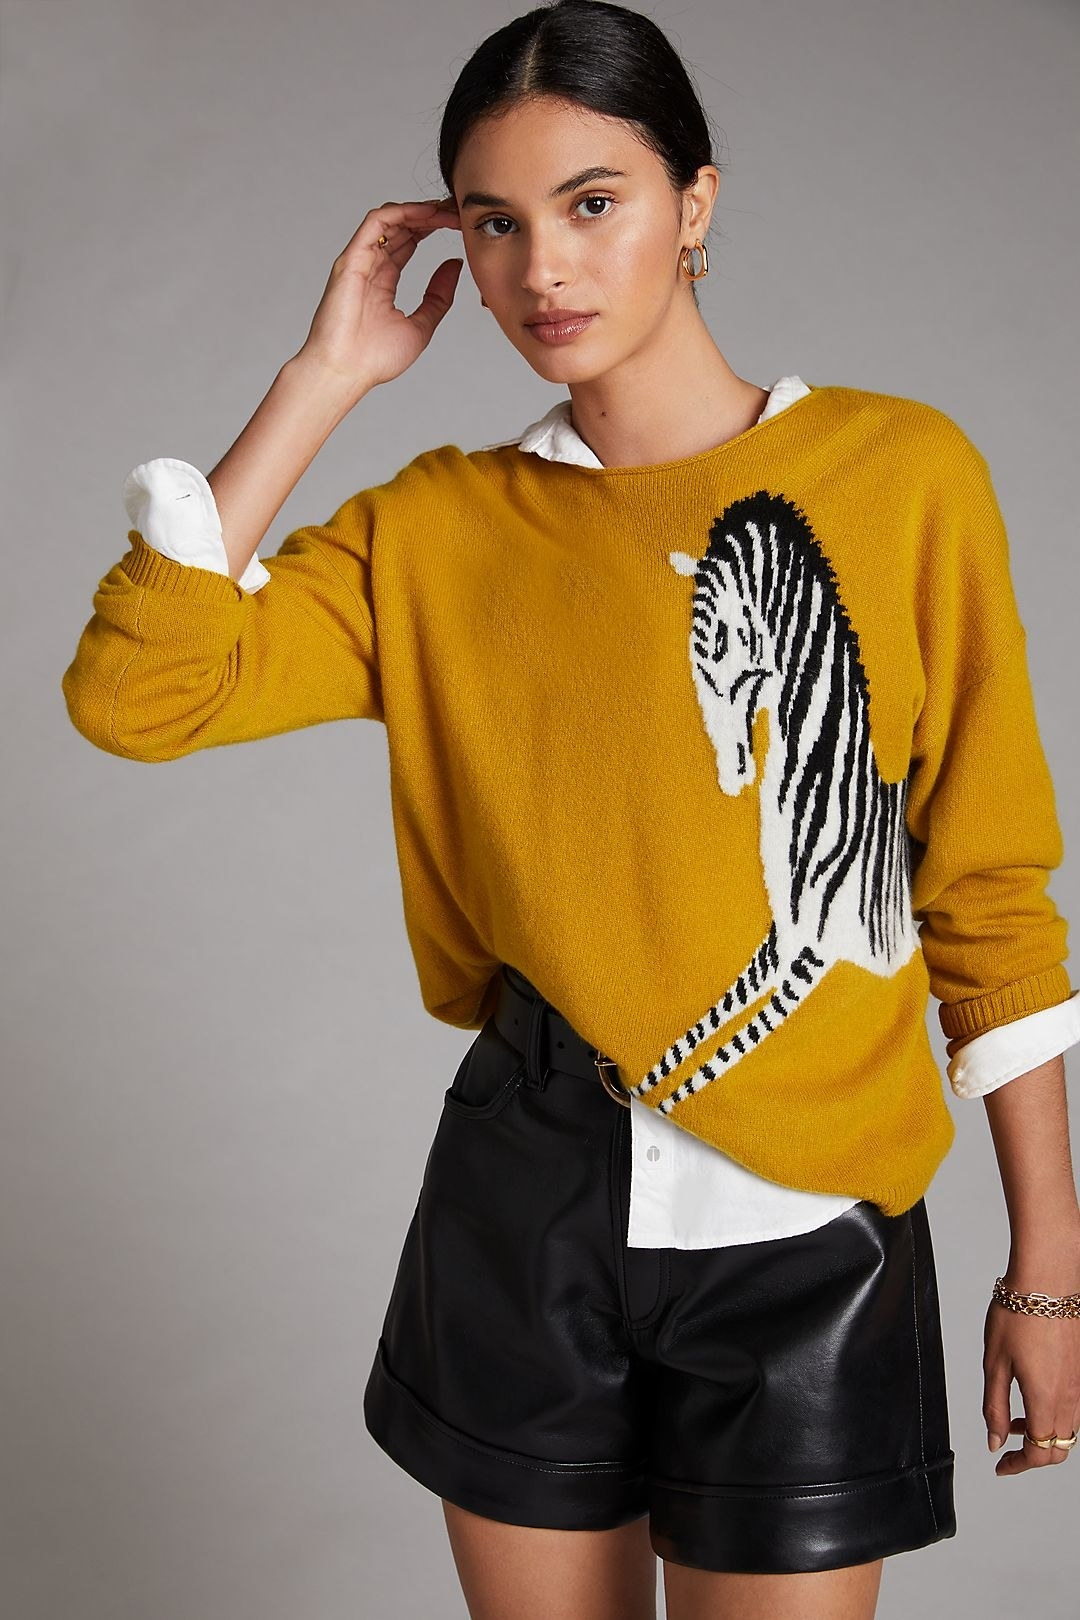 model wearing the yellow sweater with a white shirt underneath and black leather shorts